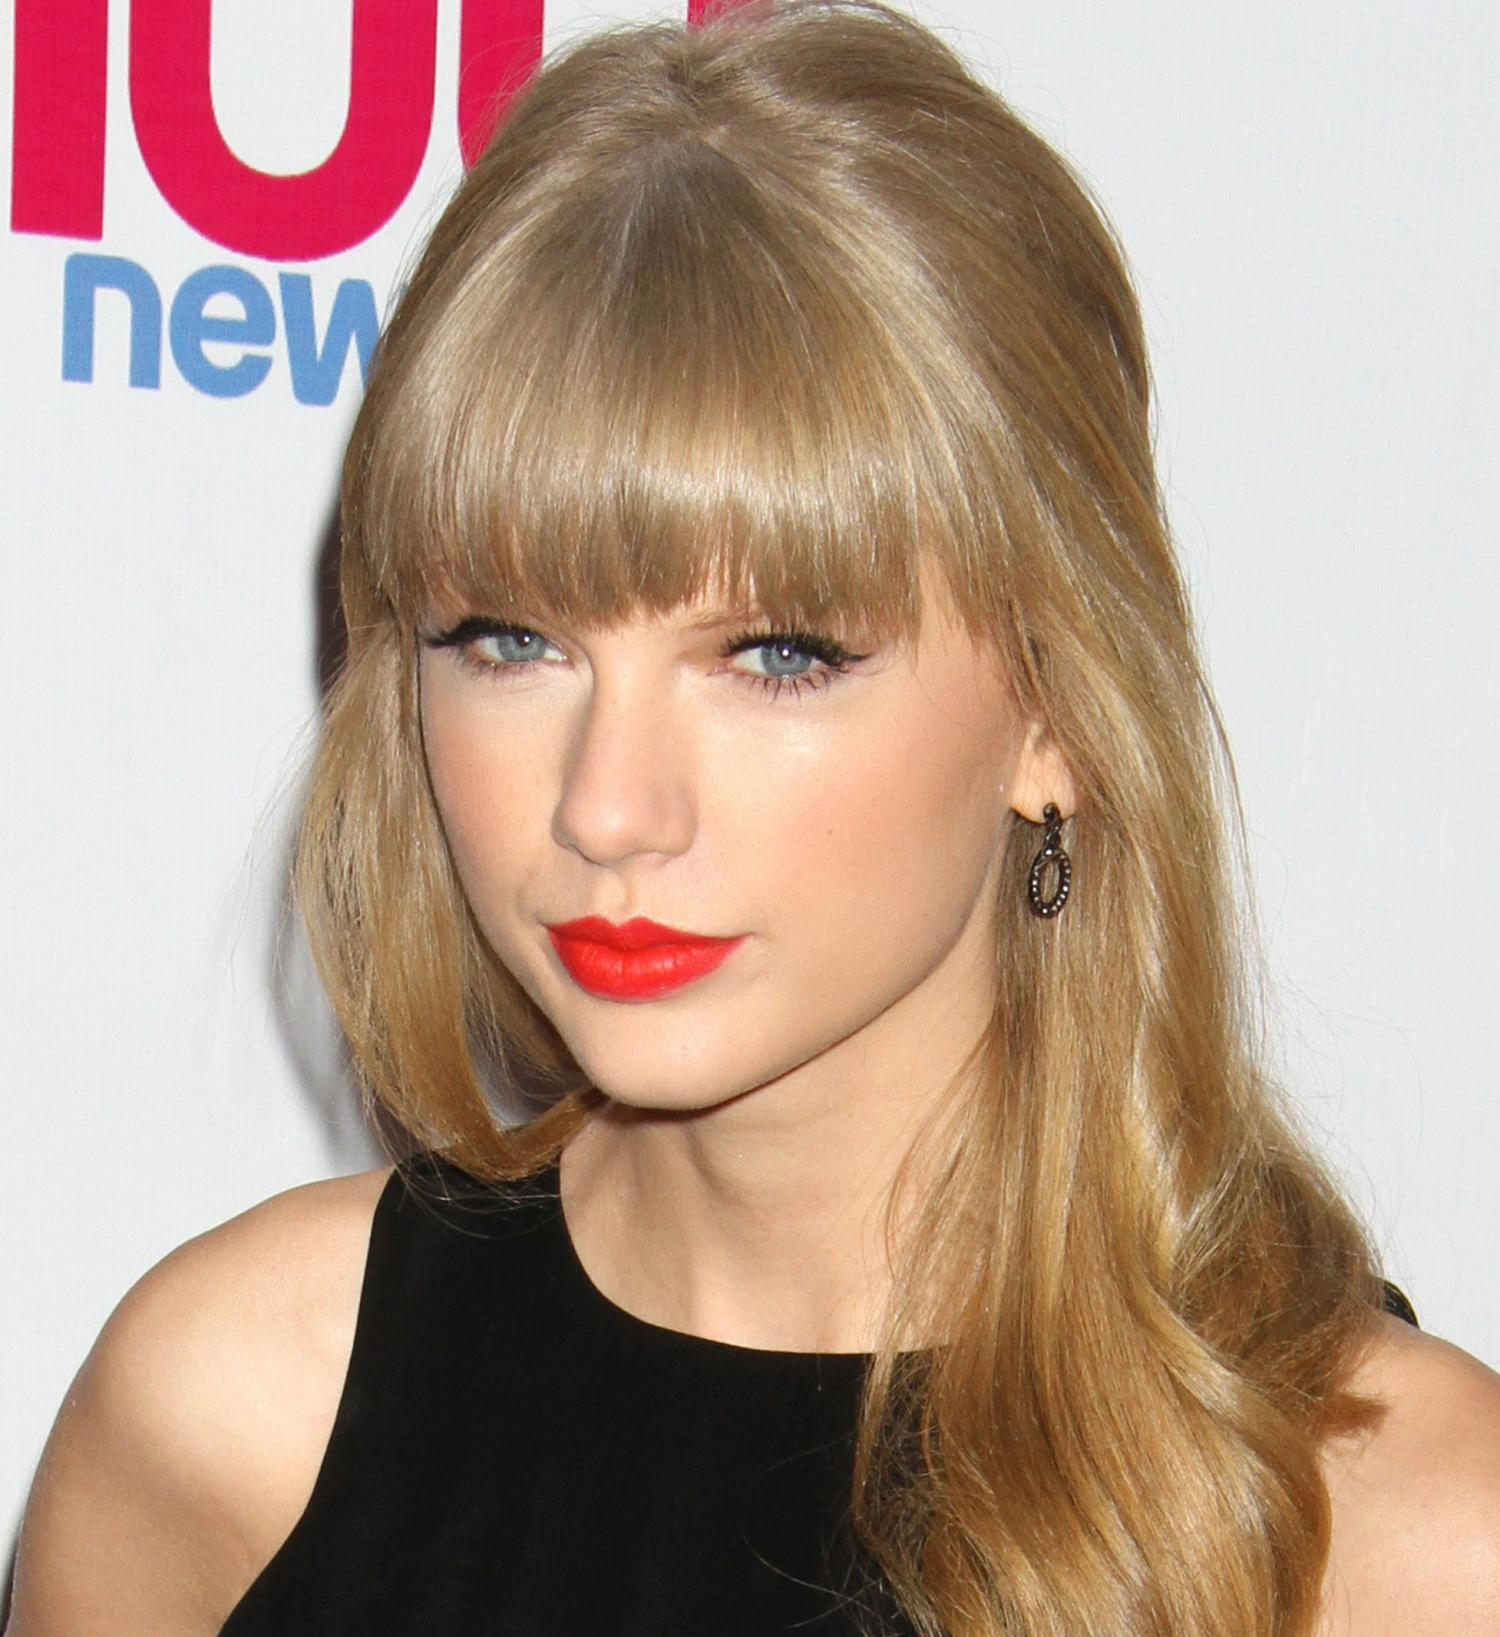 Get The Look Taylor Swifts Perfectly Precise Lips